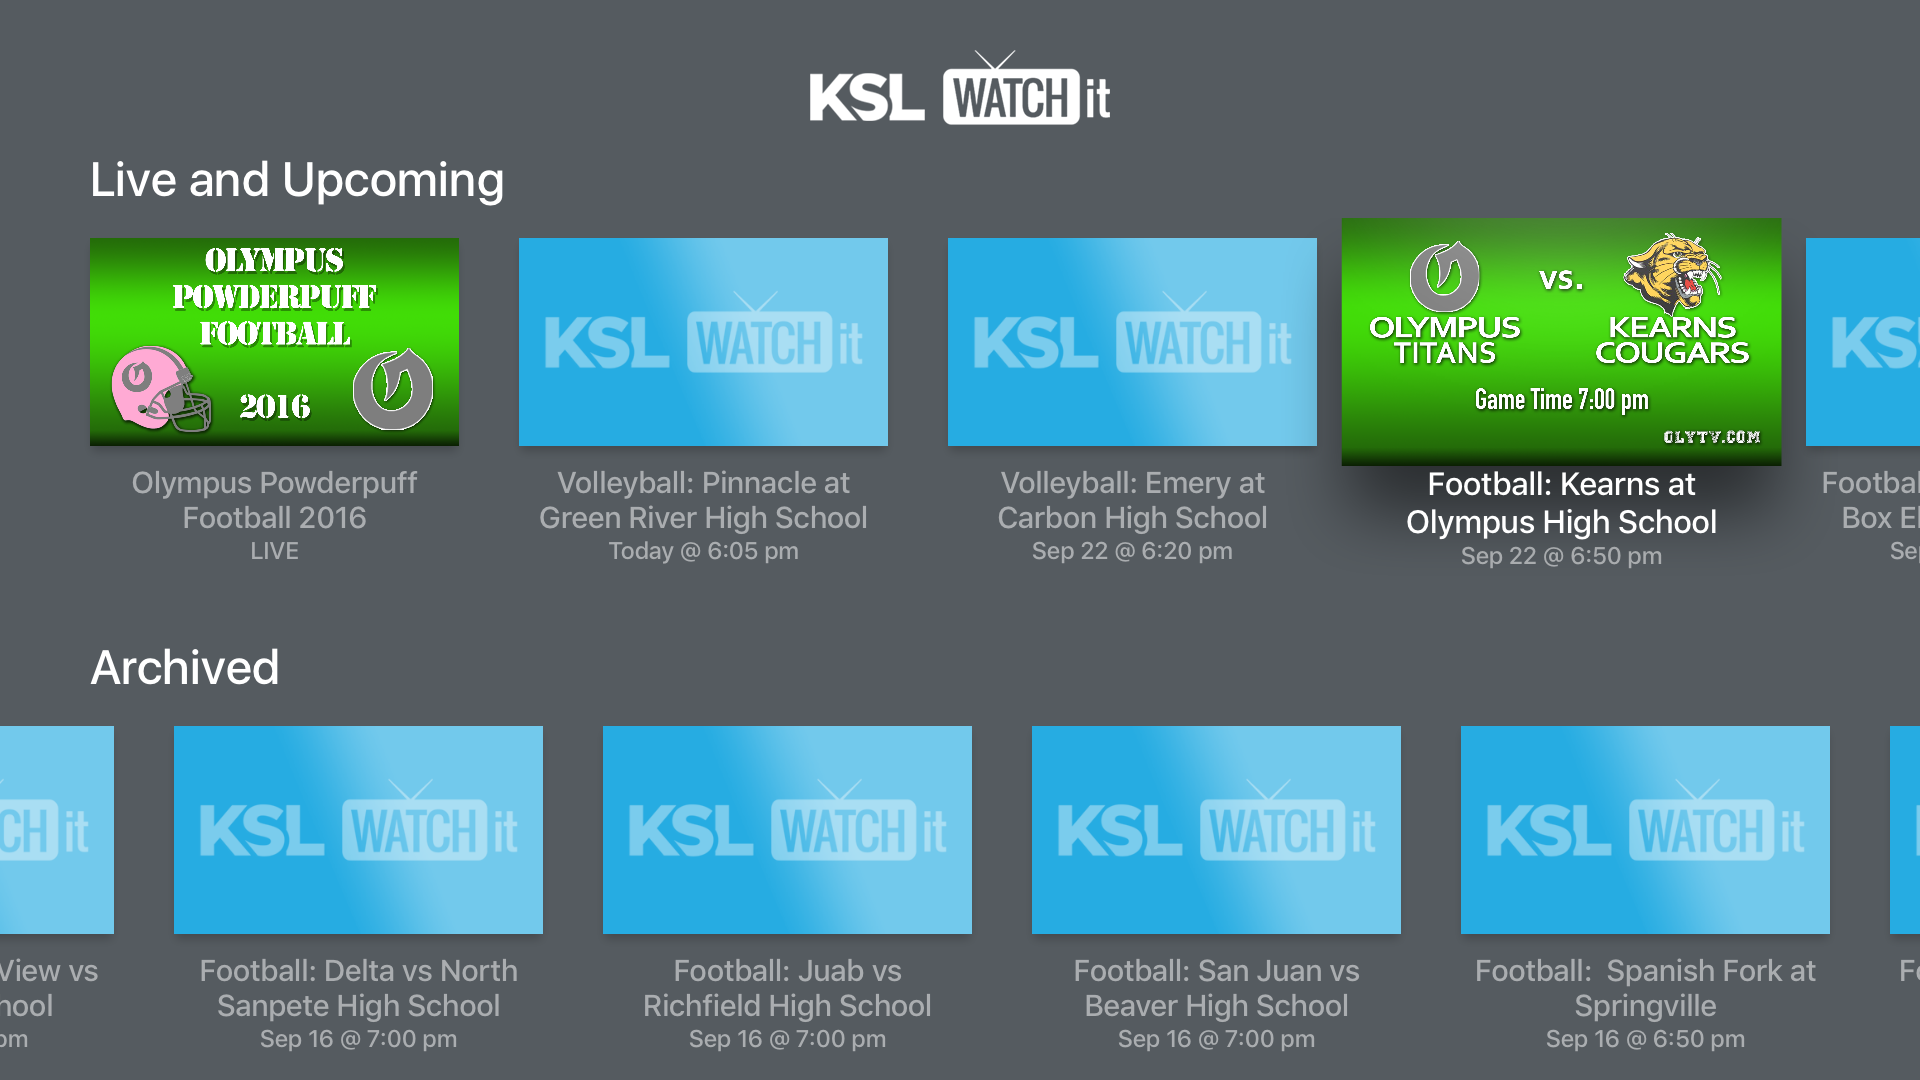 Ksl Watchit Photo Sports Amp Ios Apples To Apples Game Kearns Game Time